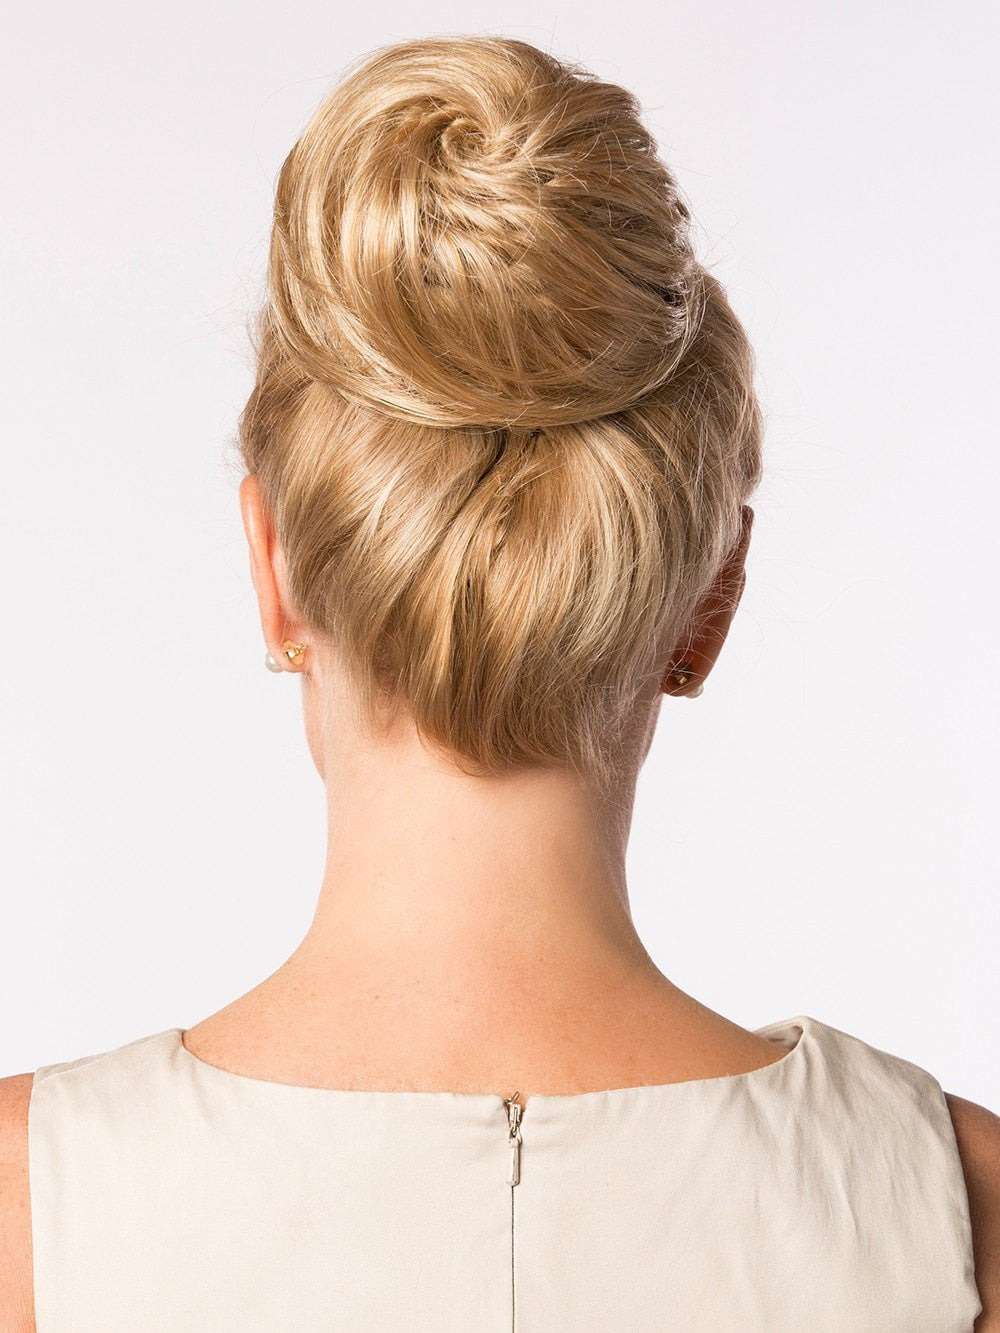 Honey Do Hair Bun By Toni Brattin Wigs Com The Wig